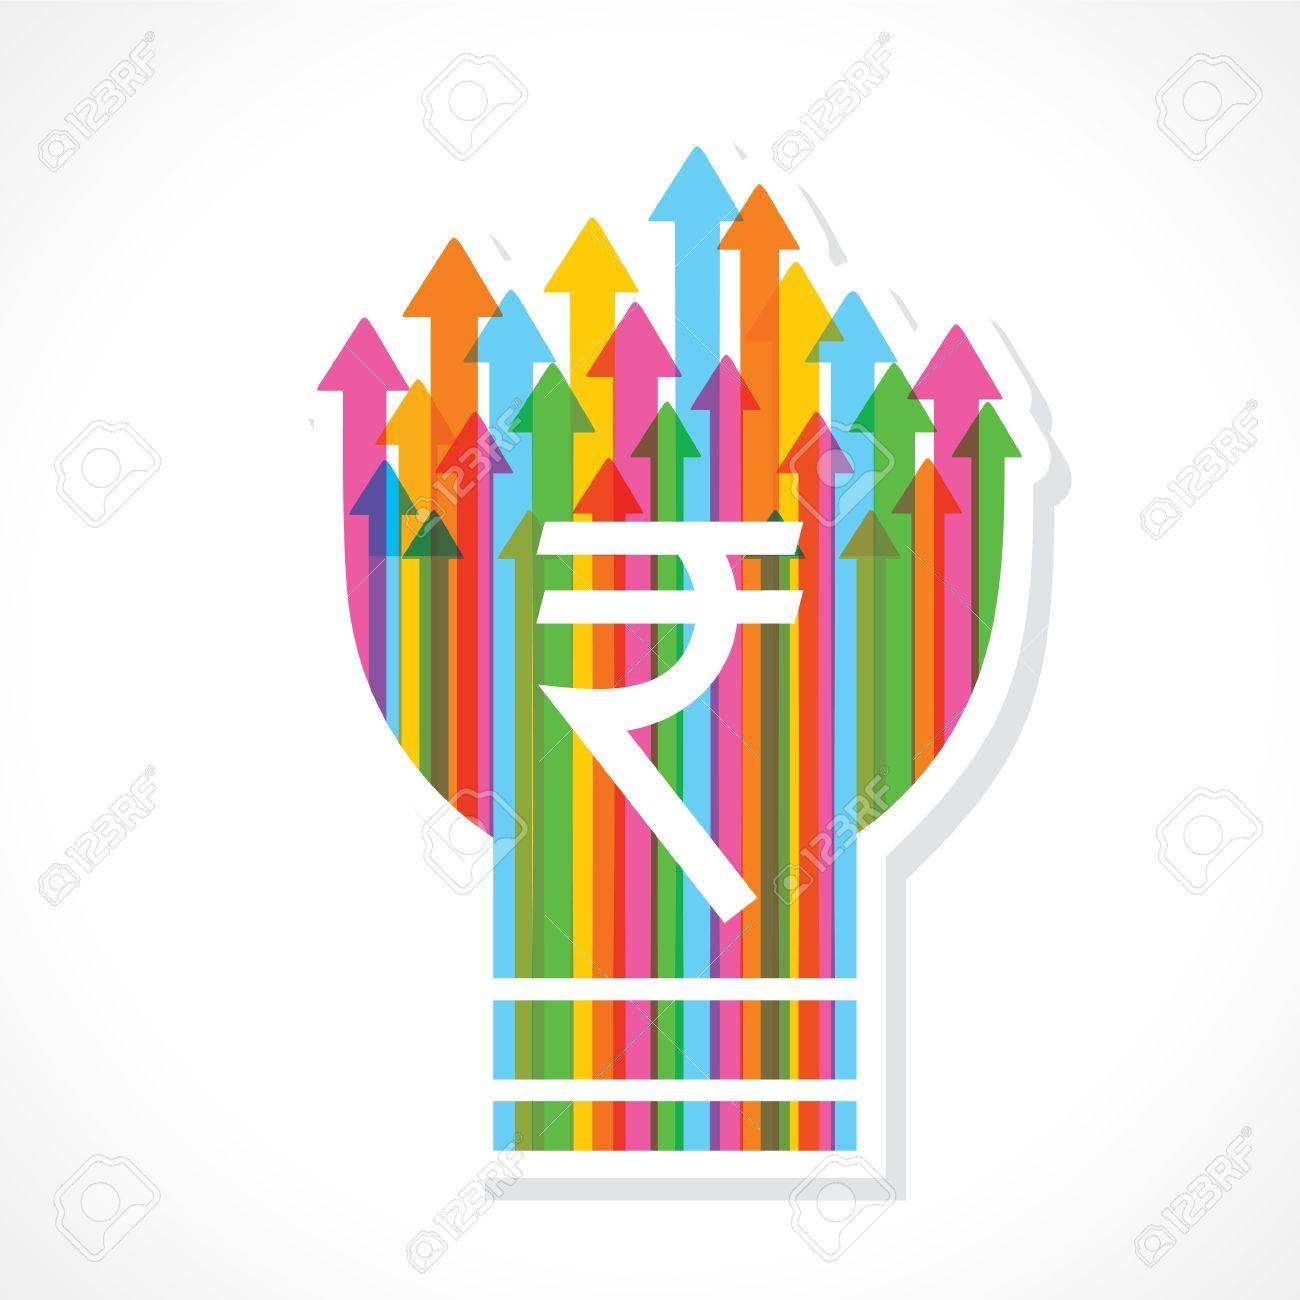 Rupee symbol on colorful arrow bulb stock vector Stock Vector - 19080412